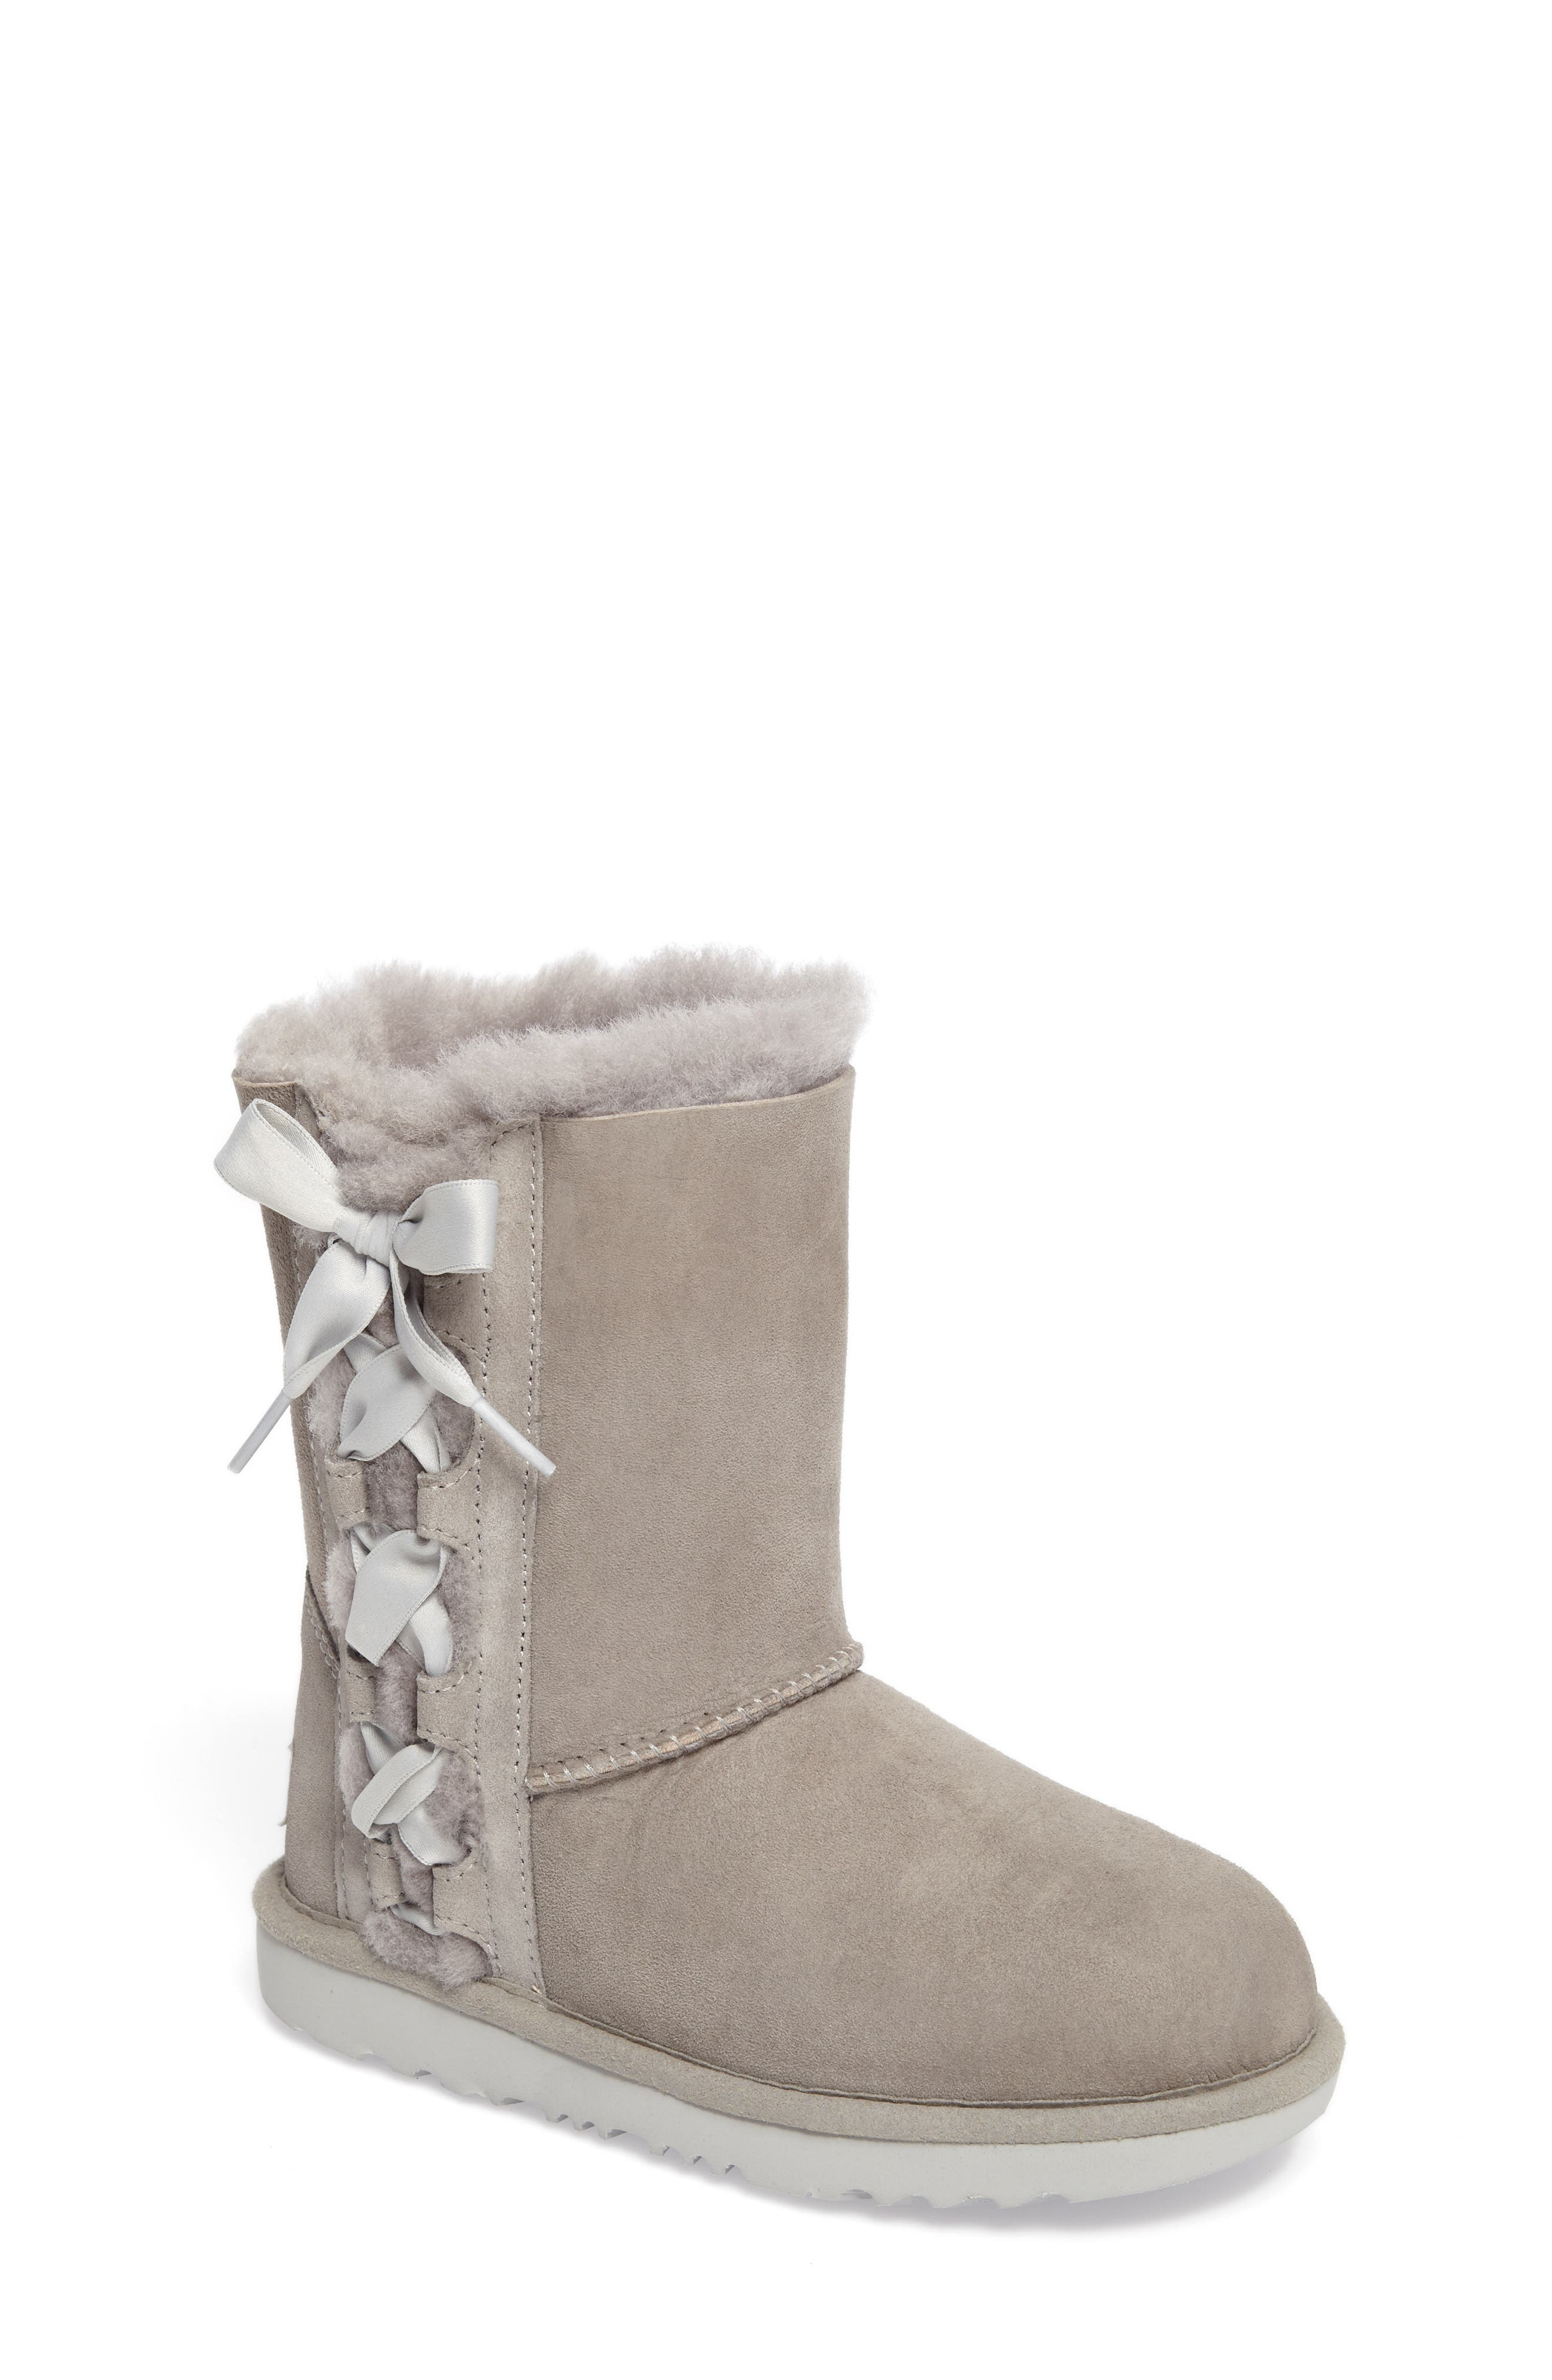 Main Image - UGG® Pala Water-Resistant Genuine Shearling Boot (Walker, Toddler, Little Kid & Big Kid)